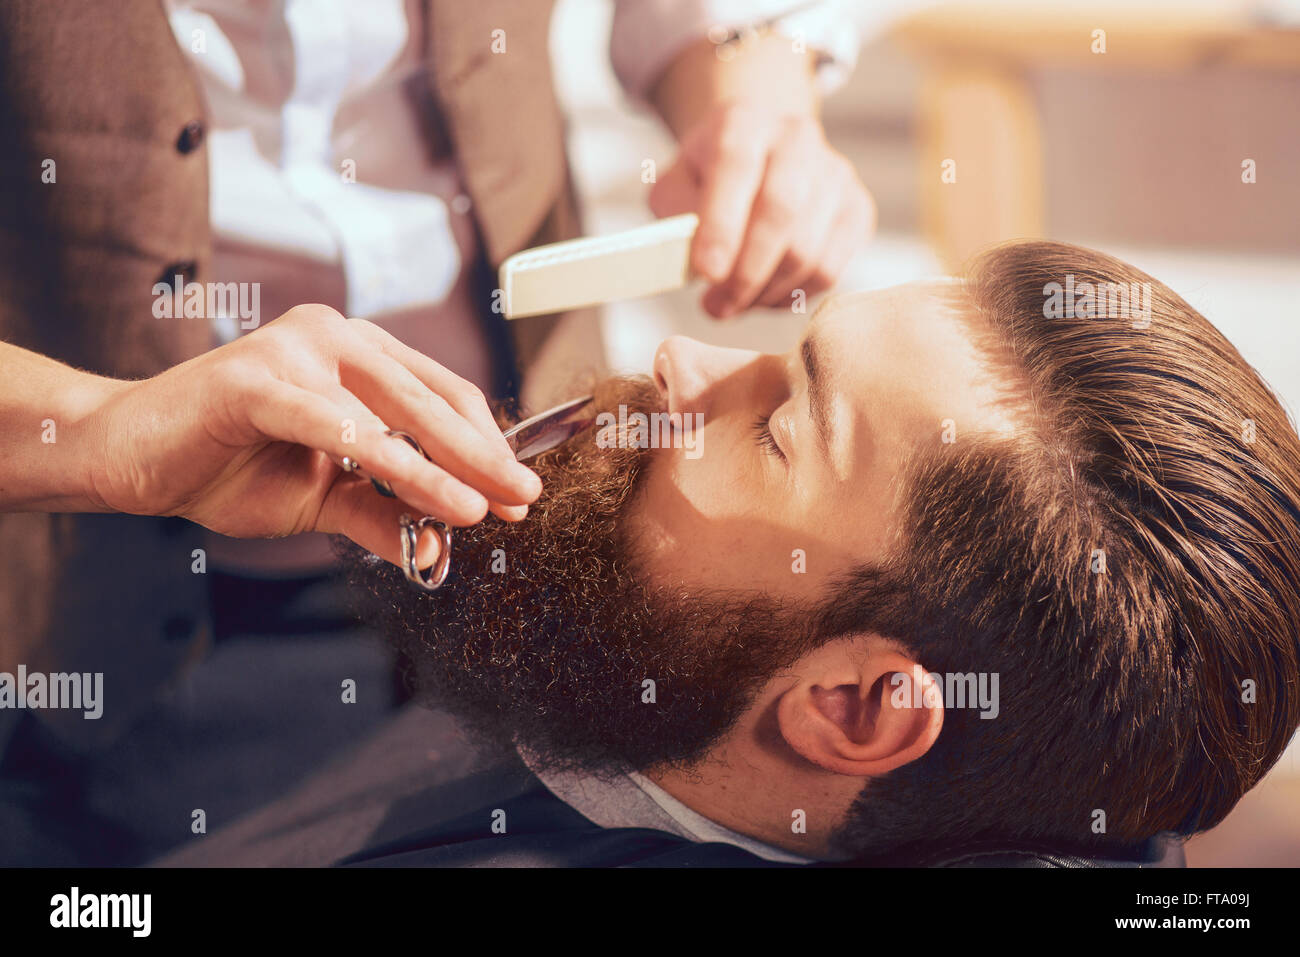 Professional barber cutting beard of handsome man - Stock Image